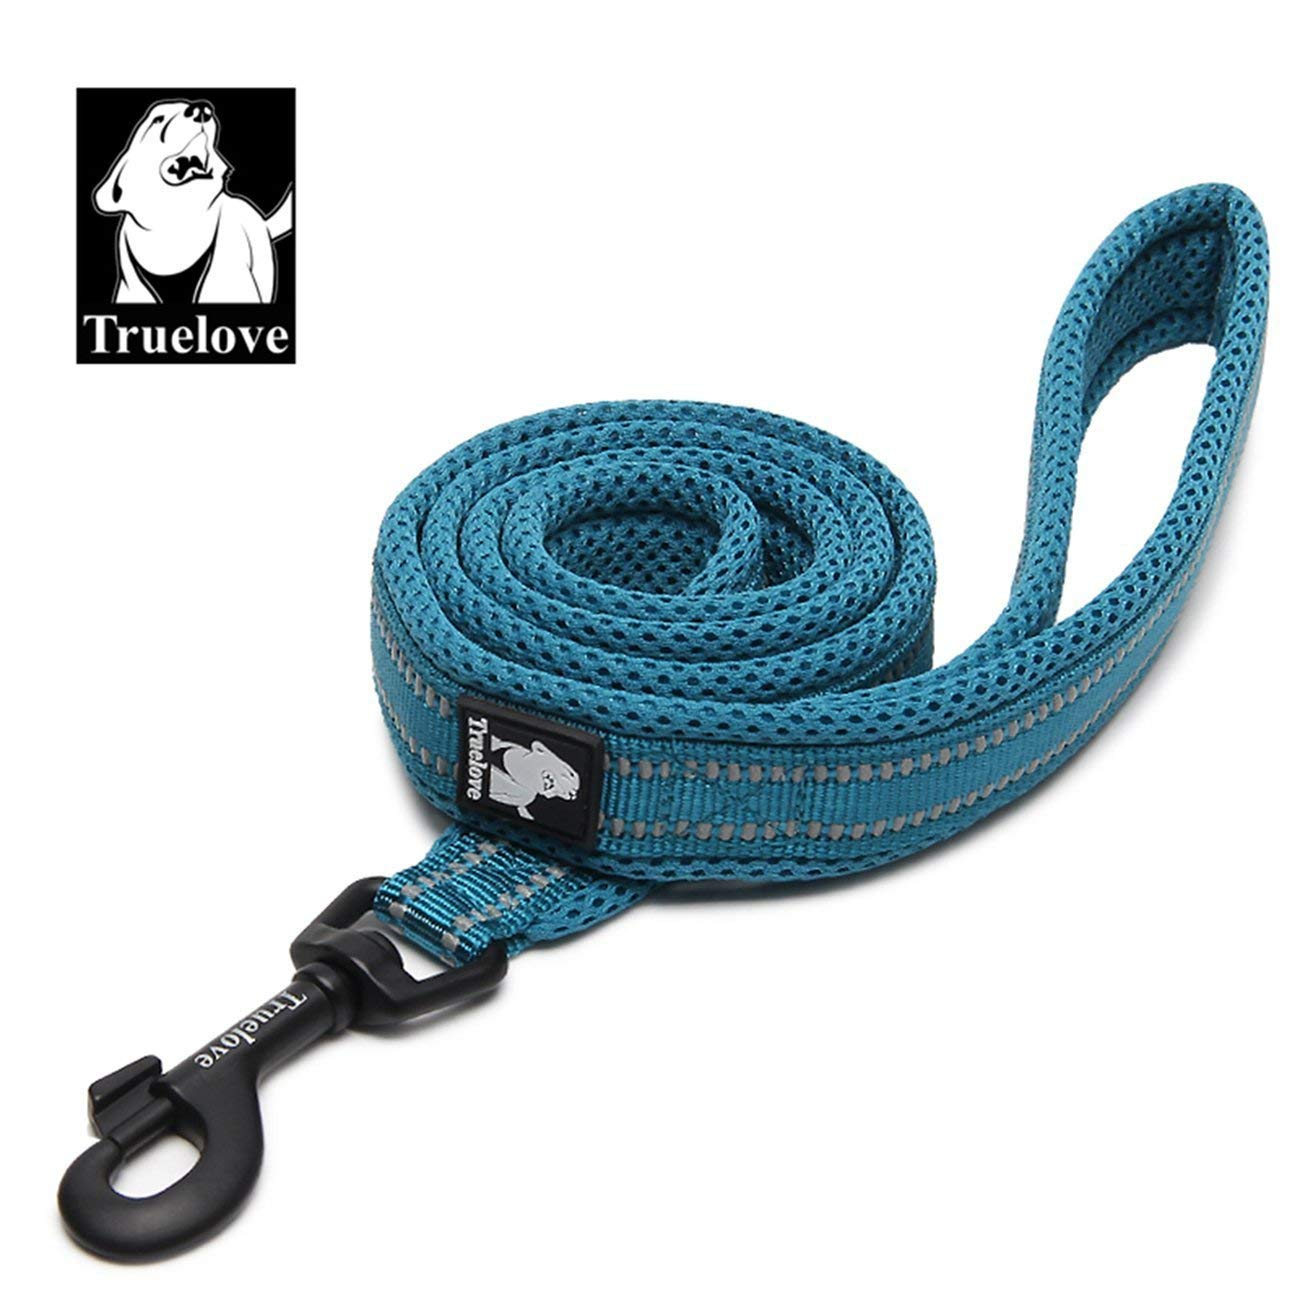 bluee Medium bluee Medium Dog Leash Puppy Walking Lead Pet Chain Padded Reflective Night Safe Rope Length 110cm (bluee,M)